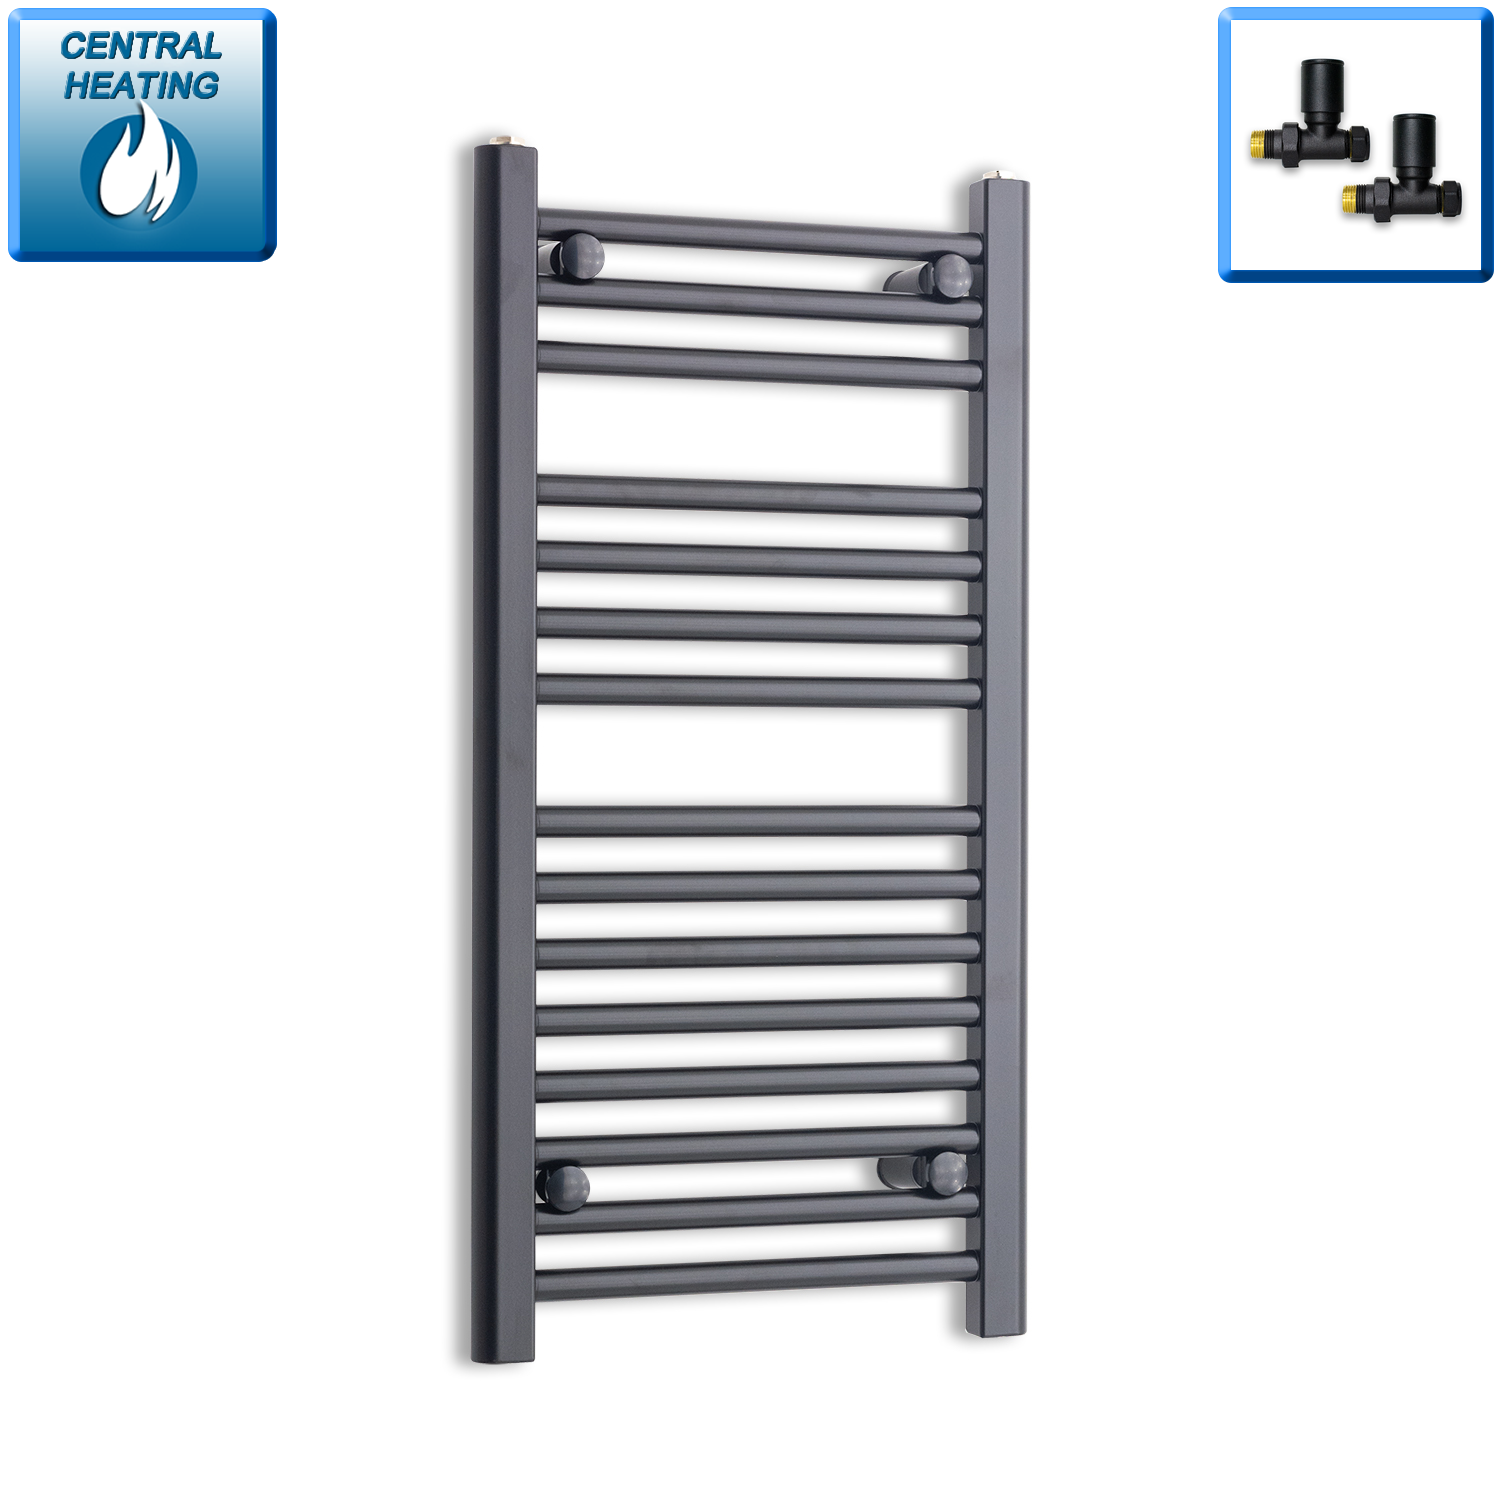 400mm Wide 800mm High Black Towel Rail Radiator With Straight Valve